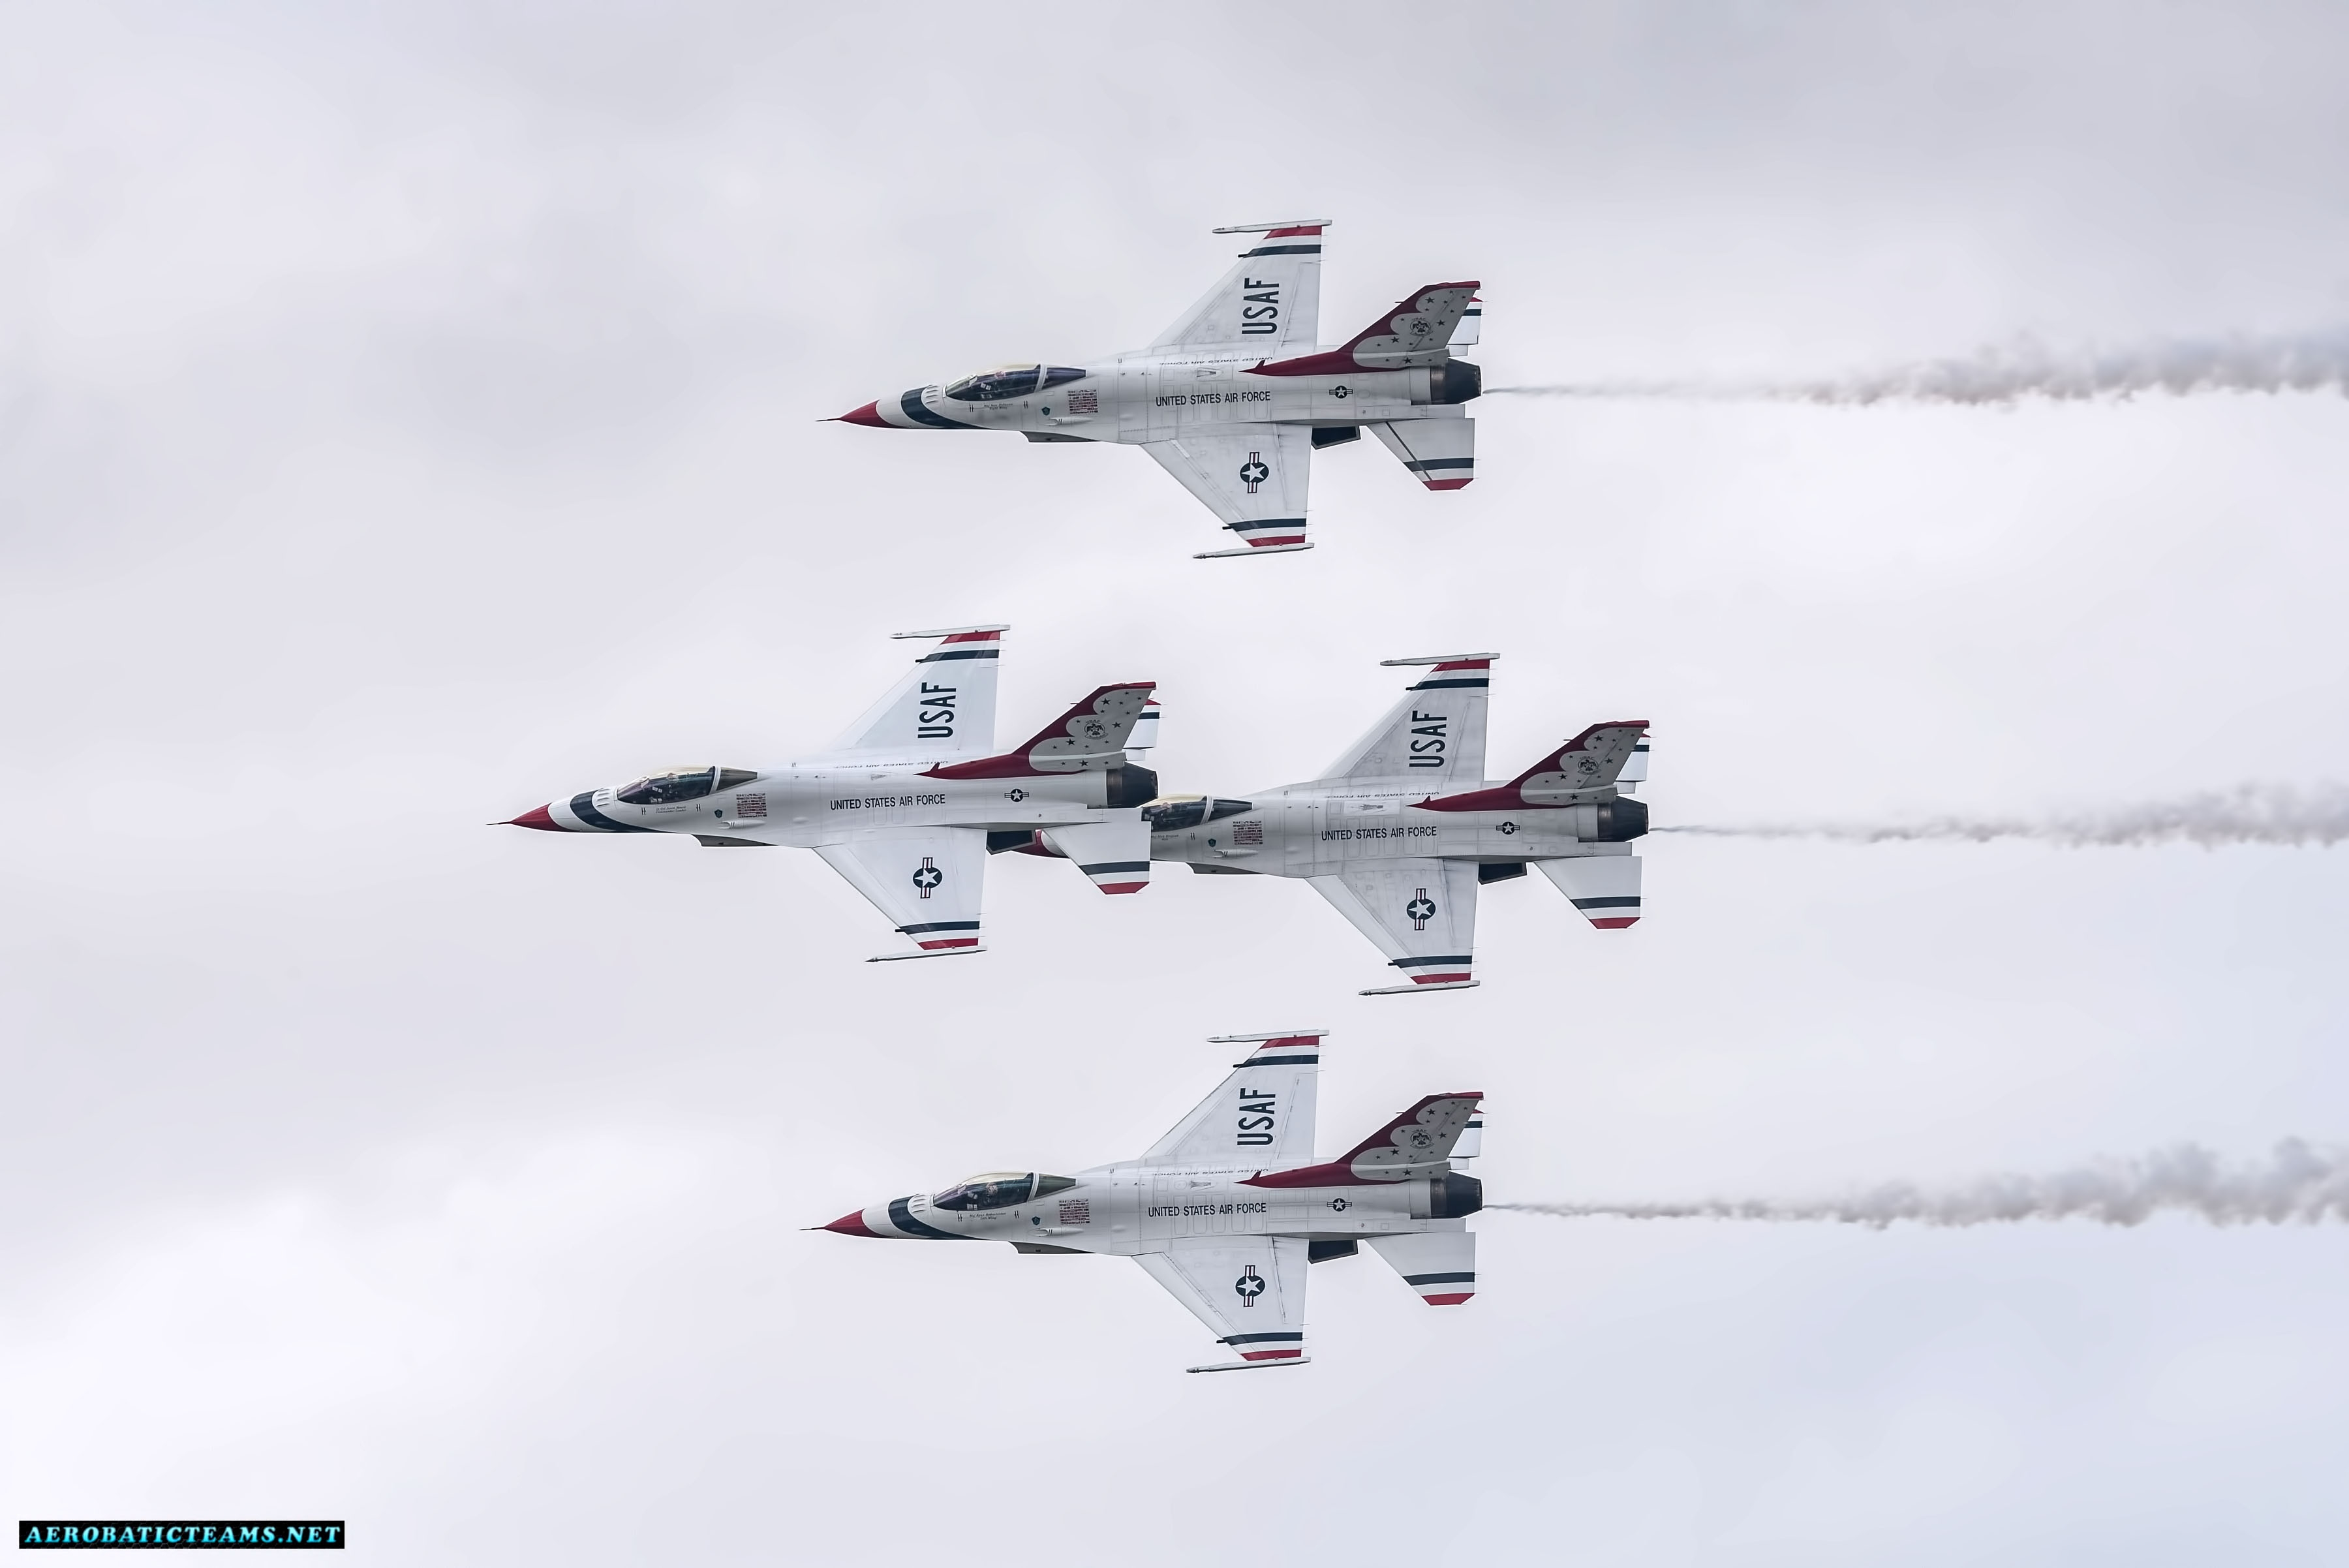 USAF Thunderbirds resume airshow displays after the crash